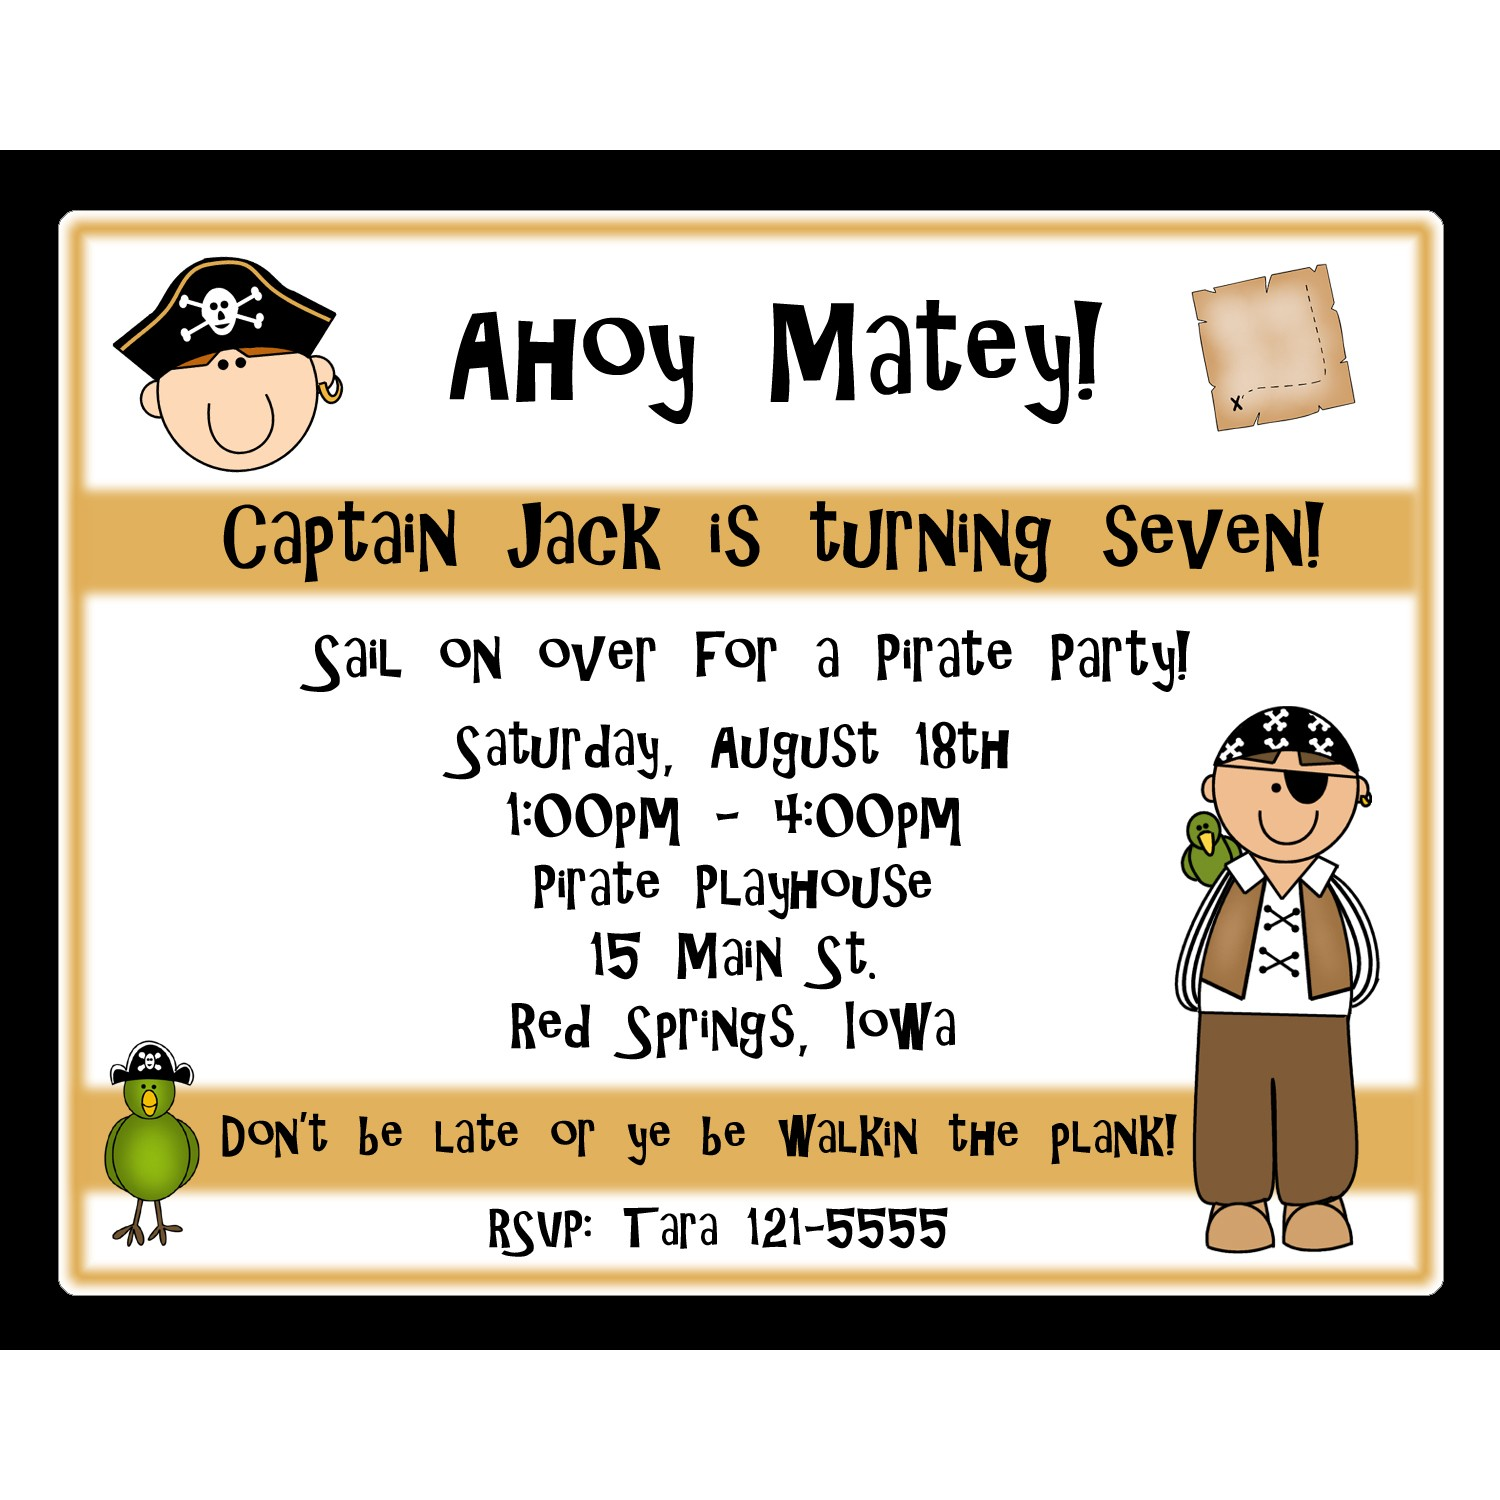 pirate themed birthday party invitation ideas ; Pirate-Themed-Birthday-Invitations-and-get-ideas-how-to-make-delightful-birthday-Invitation-appearance-18